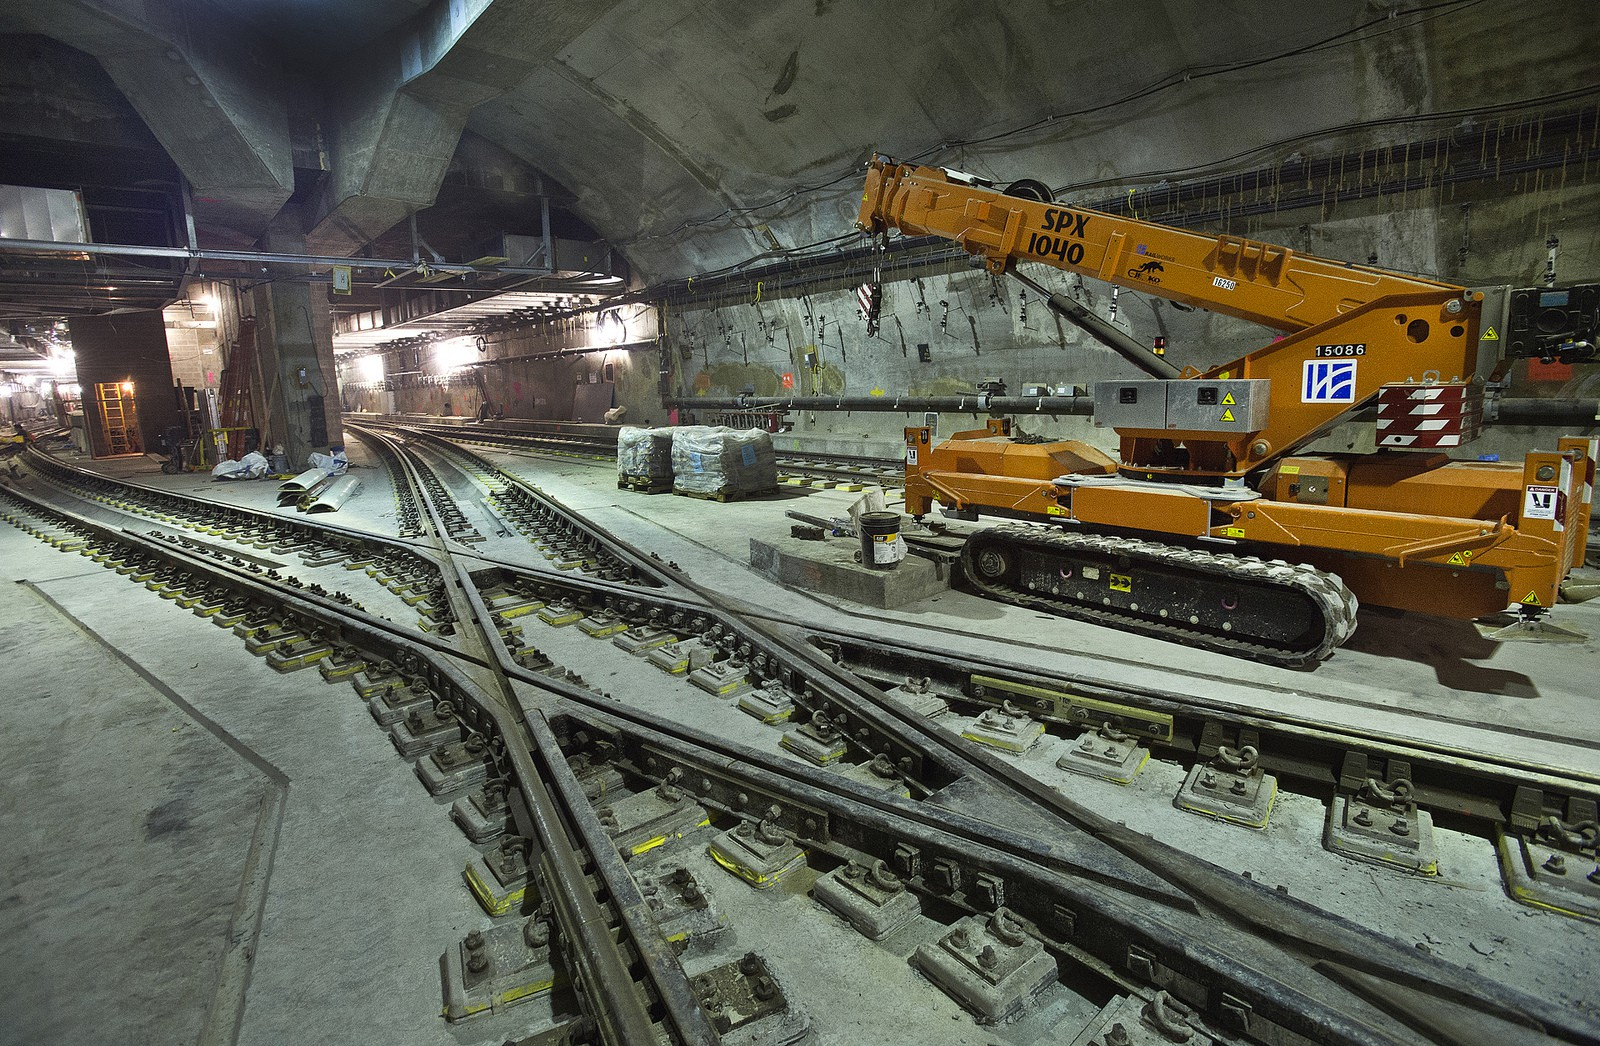 Tunneling for the 7 line extension to Hudson Yards